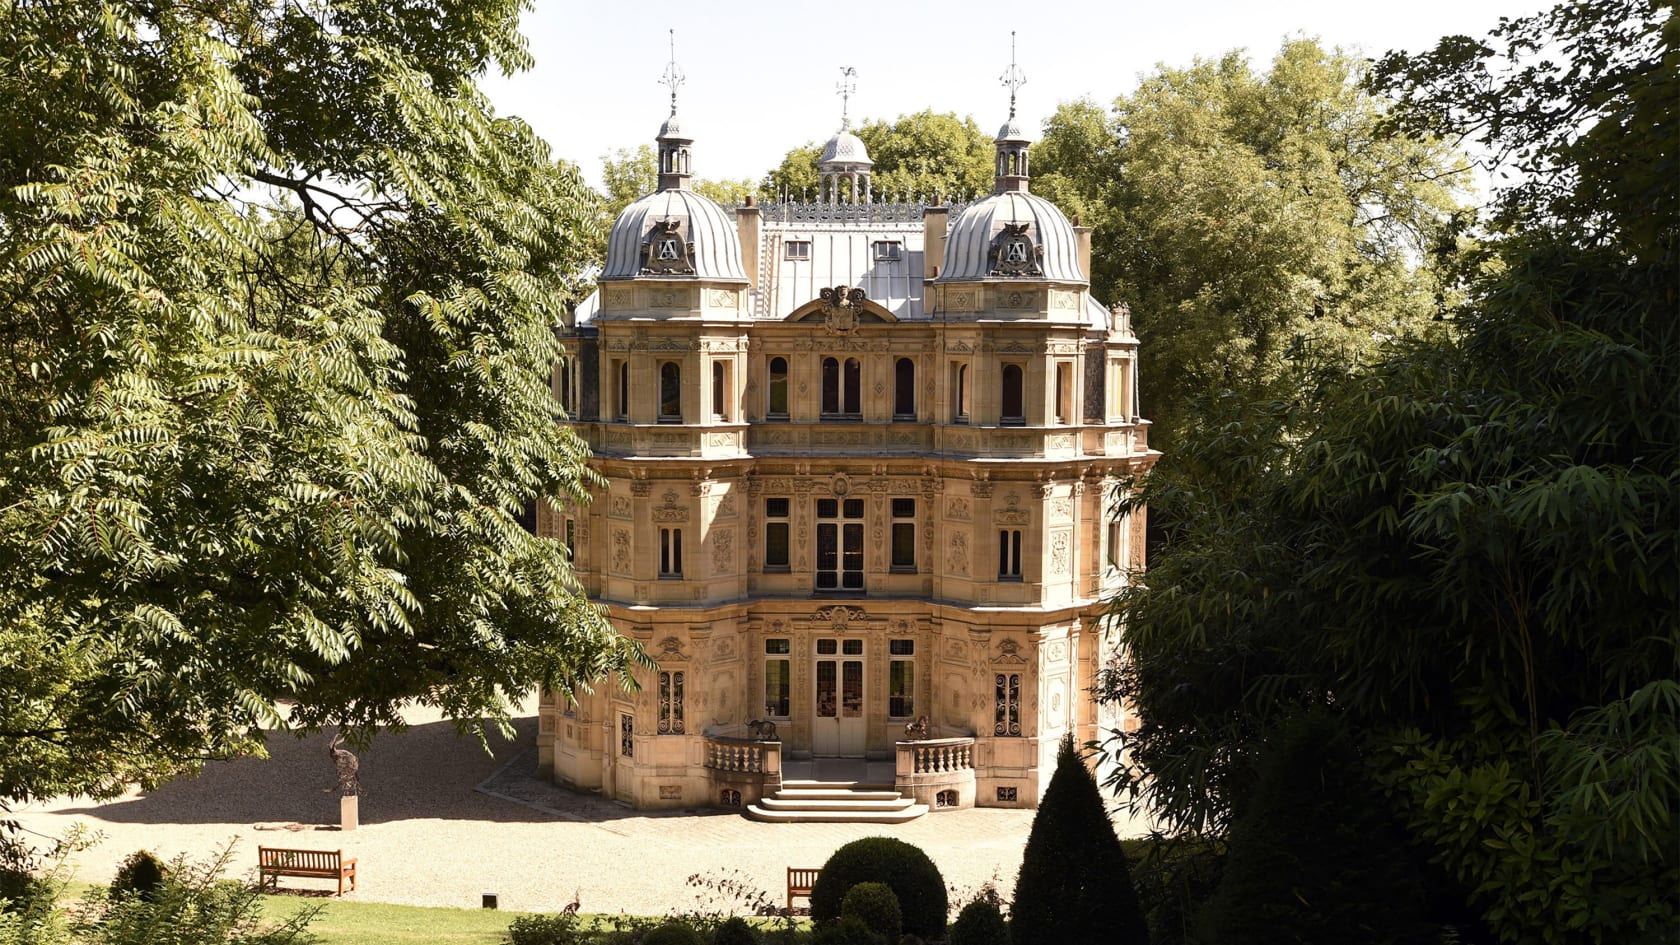 Château de Monte Cristo: The Gaudy Pleasure Palace that Wrecked Alexandre Dumas